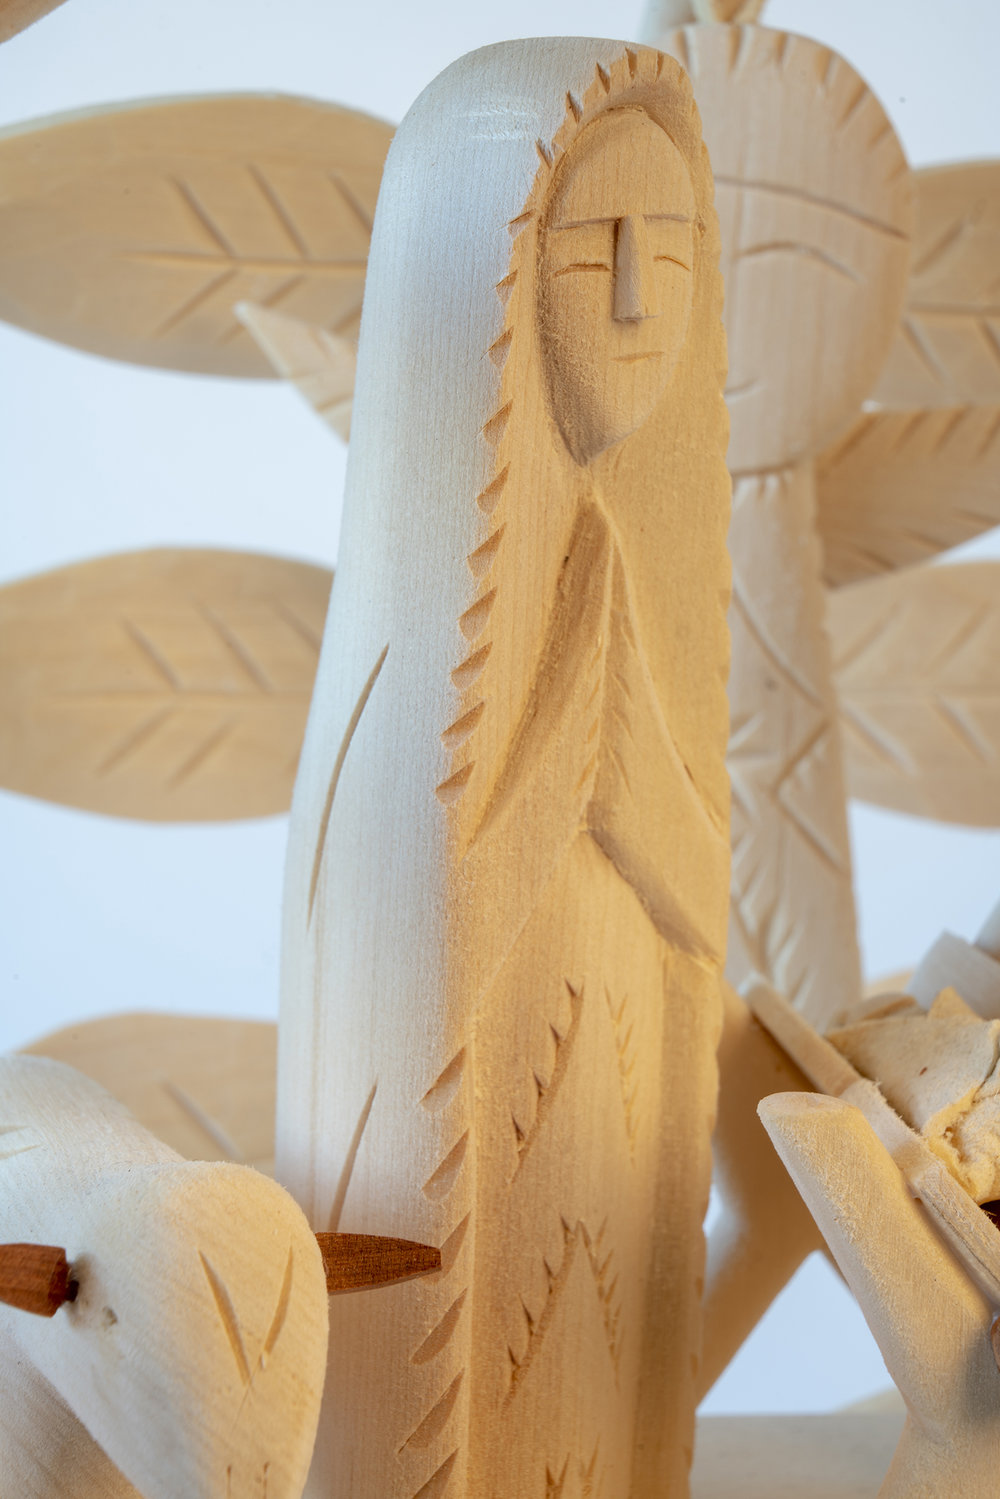 Figure 16: Mary. Detail of Nativity santo pictured in Figure 14, by Sabinita López Ortiz, 2018.